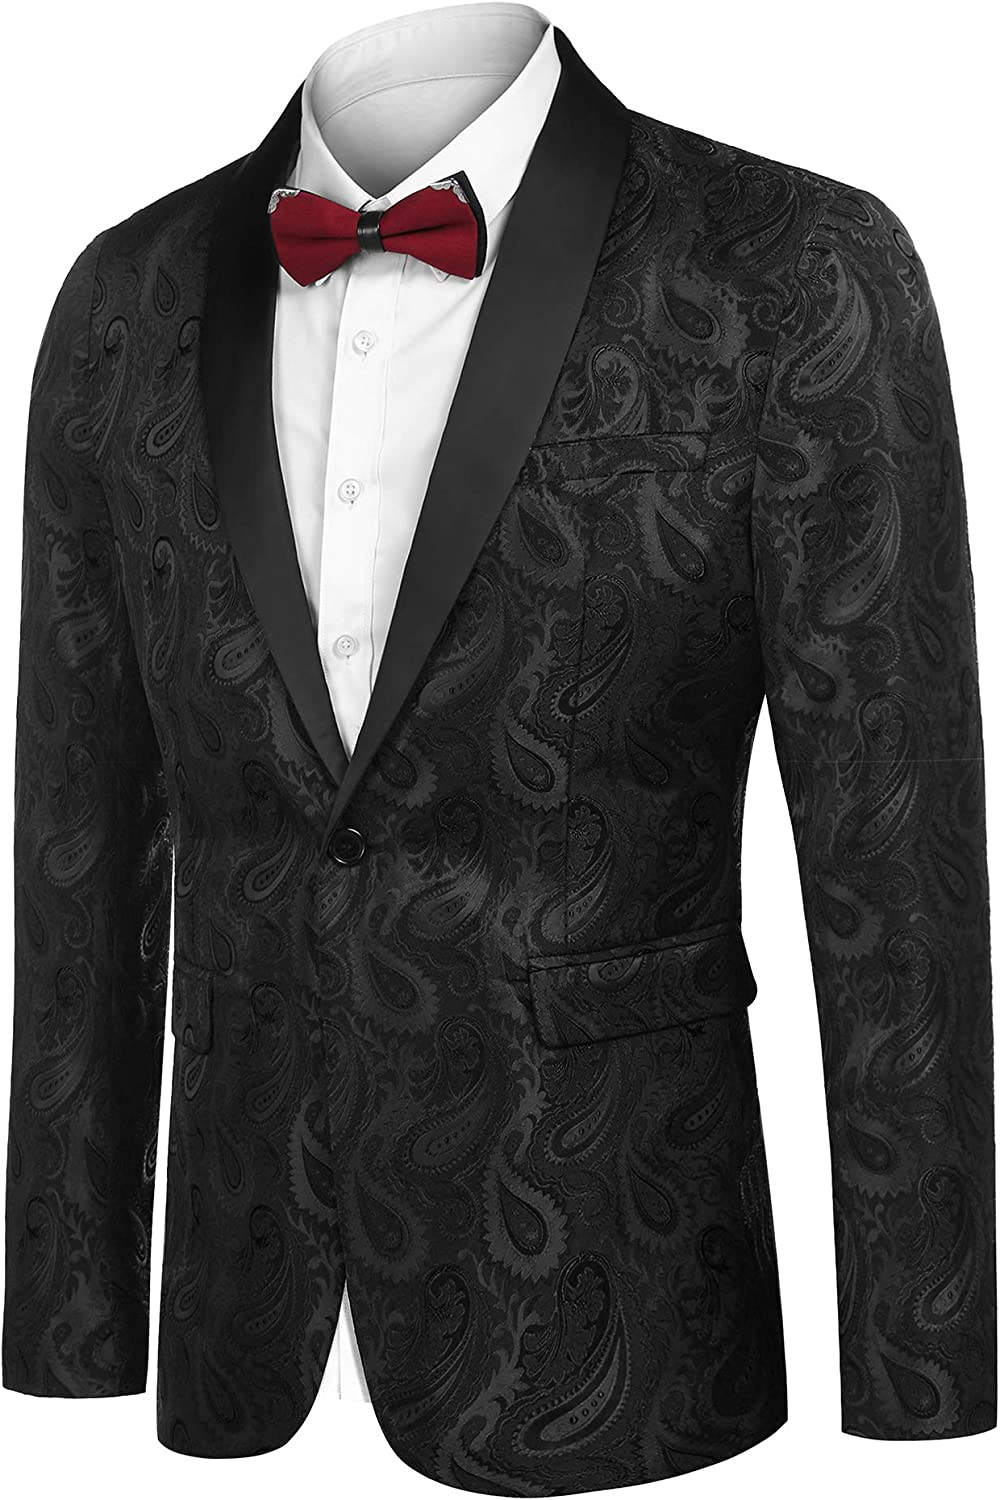 JINIDU Men's Floral Tuxedo Jacket Paisley Embroidered Suit Jacket for Dinner,Party,Wedding,Prom